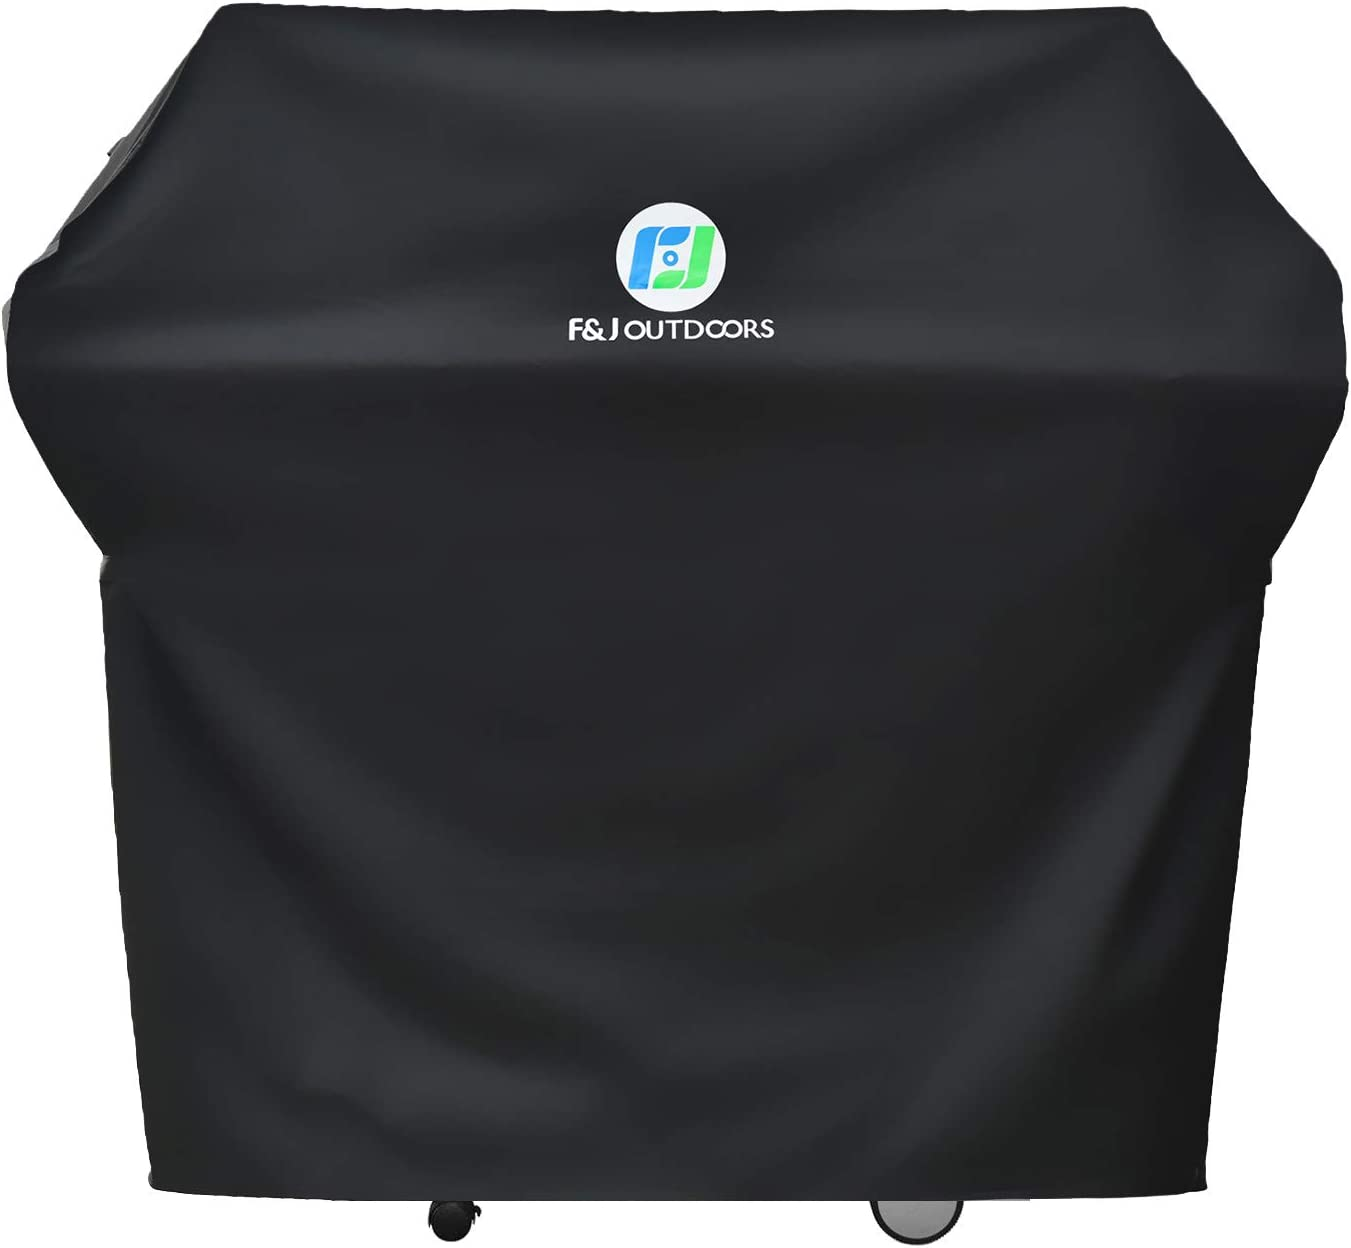 F&J Outdoors Waterproof Grill Cover, 72x26x51 inches UV Protection for Fade Resistance BBQ Barbecue Covers Fit 5 and More Burner Gas Grills, Black